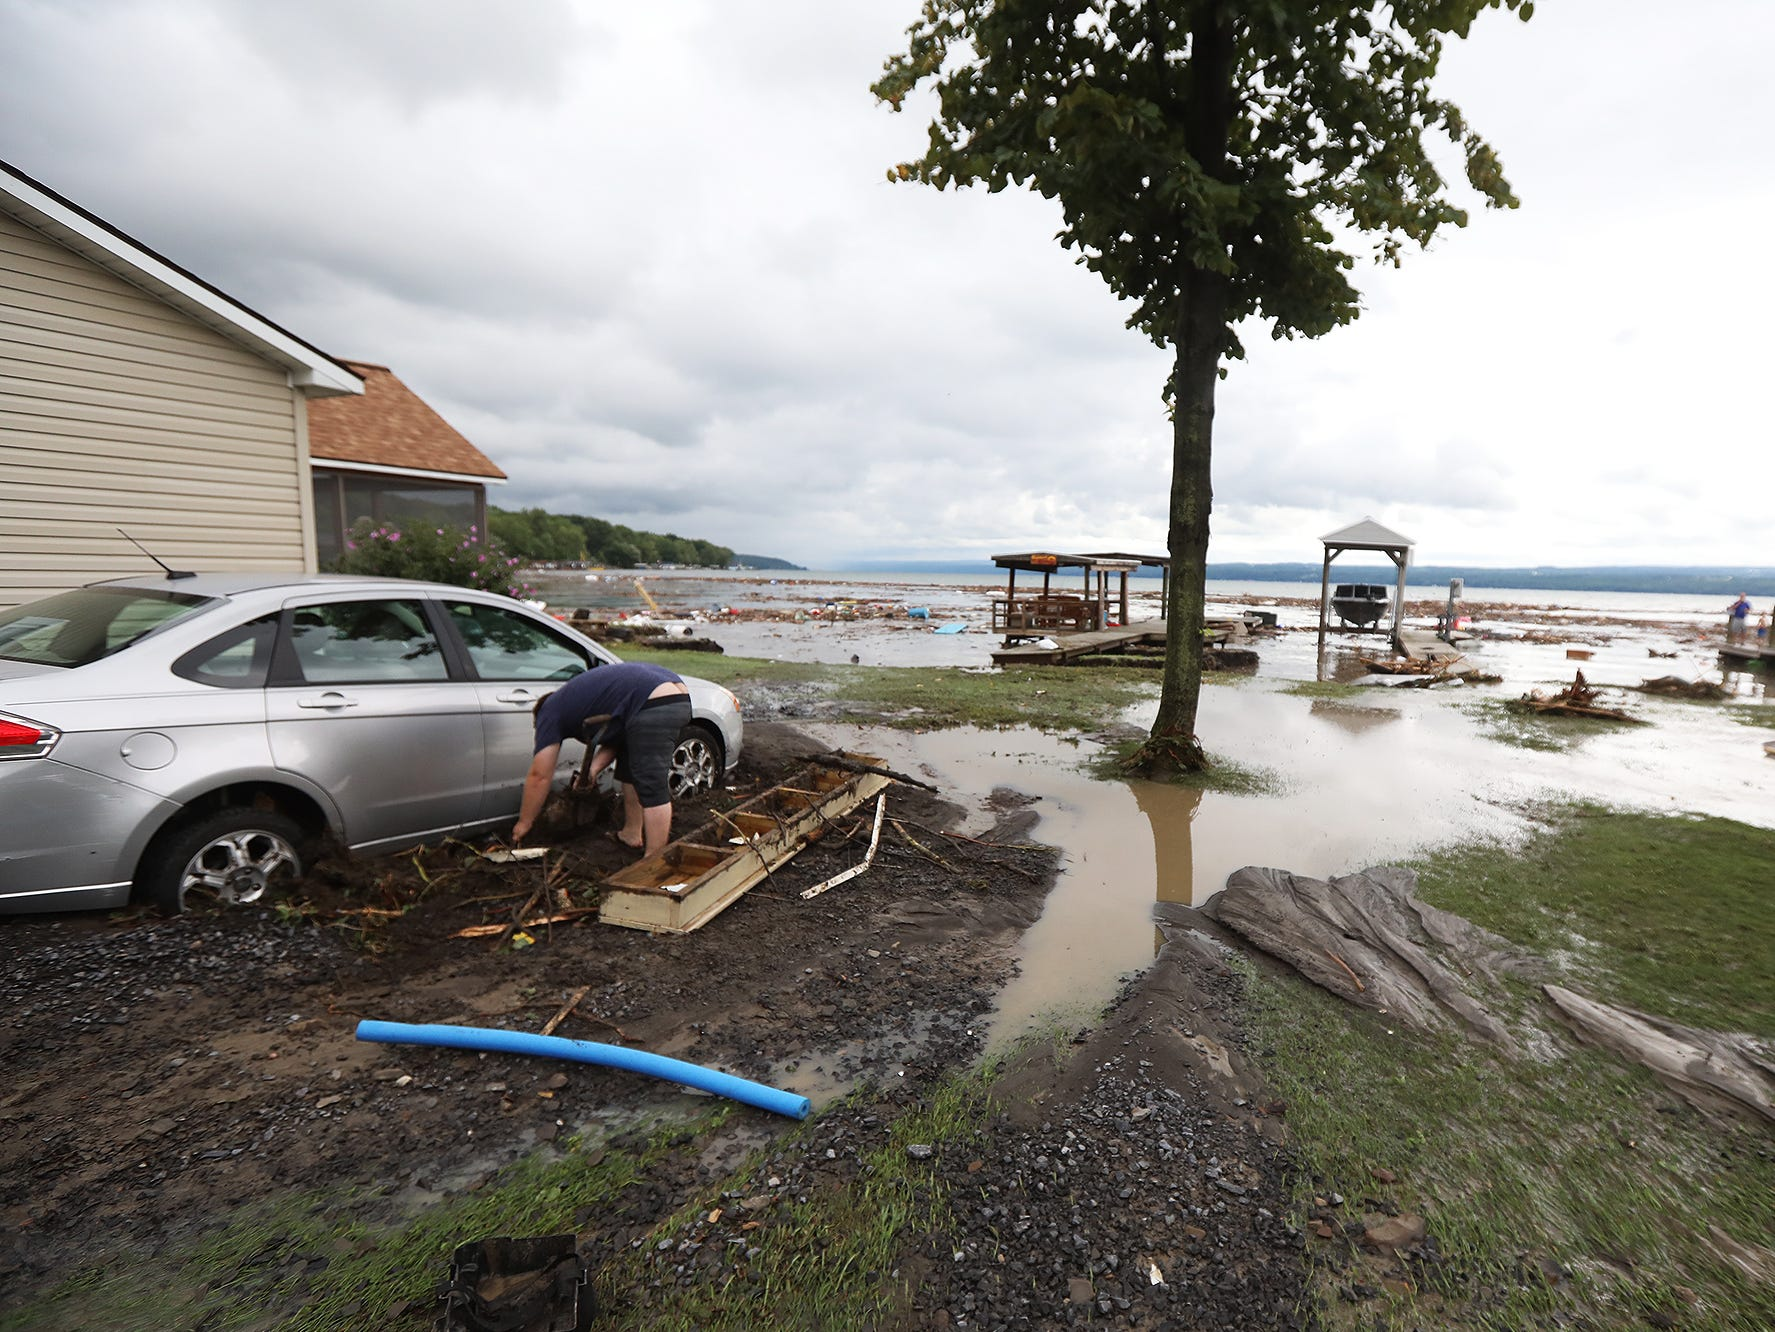 Andrew Skinner of Virginia tries to dig out his car that is stuck in a few feet of mud after heavy rain caused flooding and washing away at Lodi Point, New York on Tuesday, August 14, 2018.